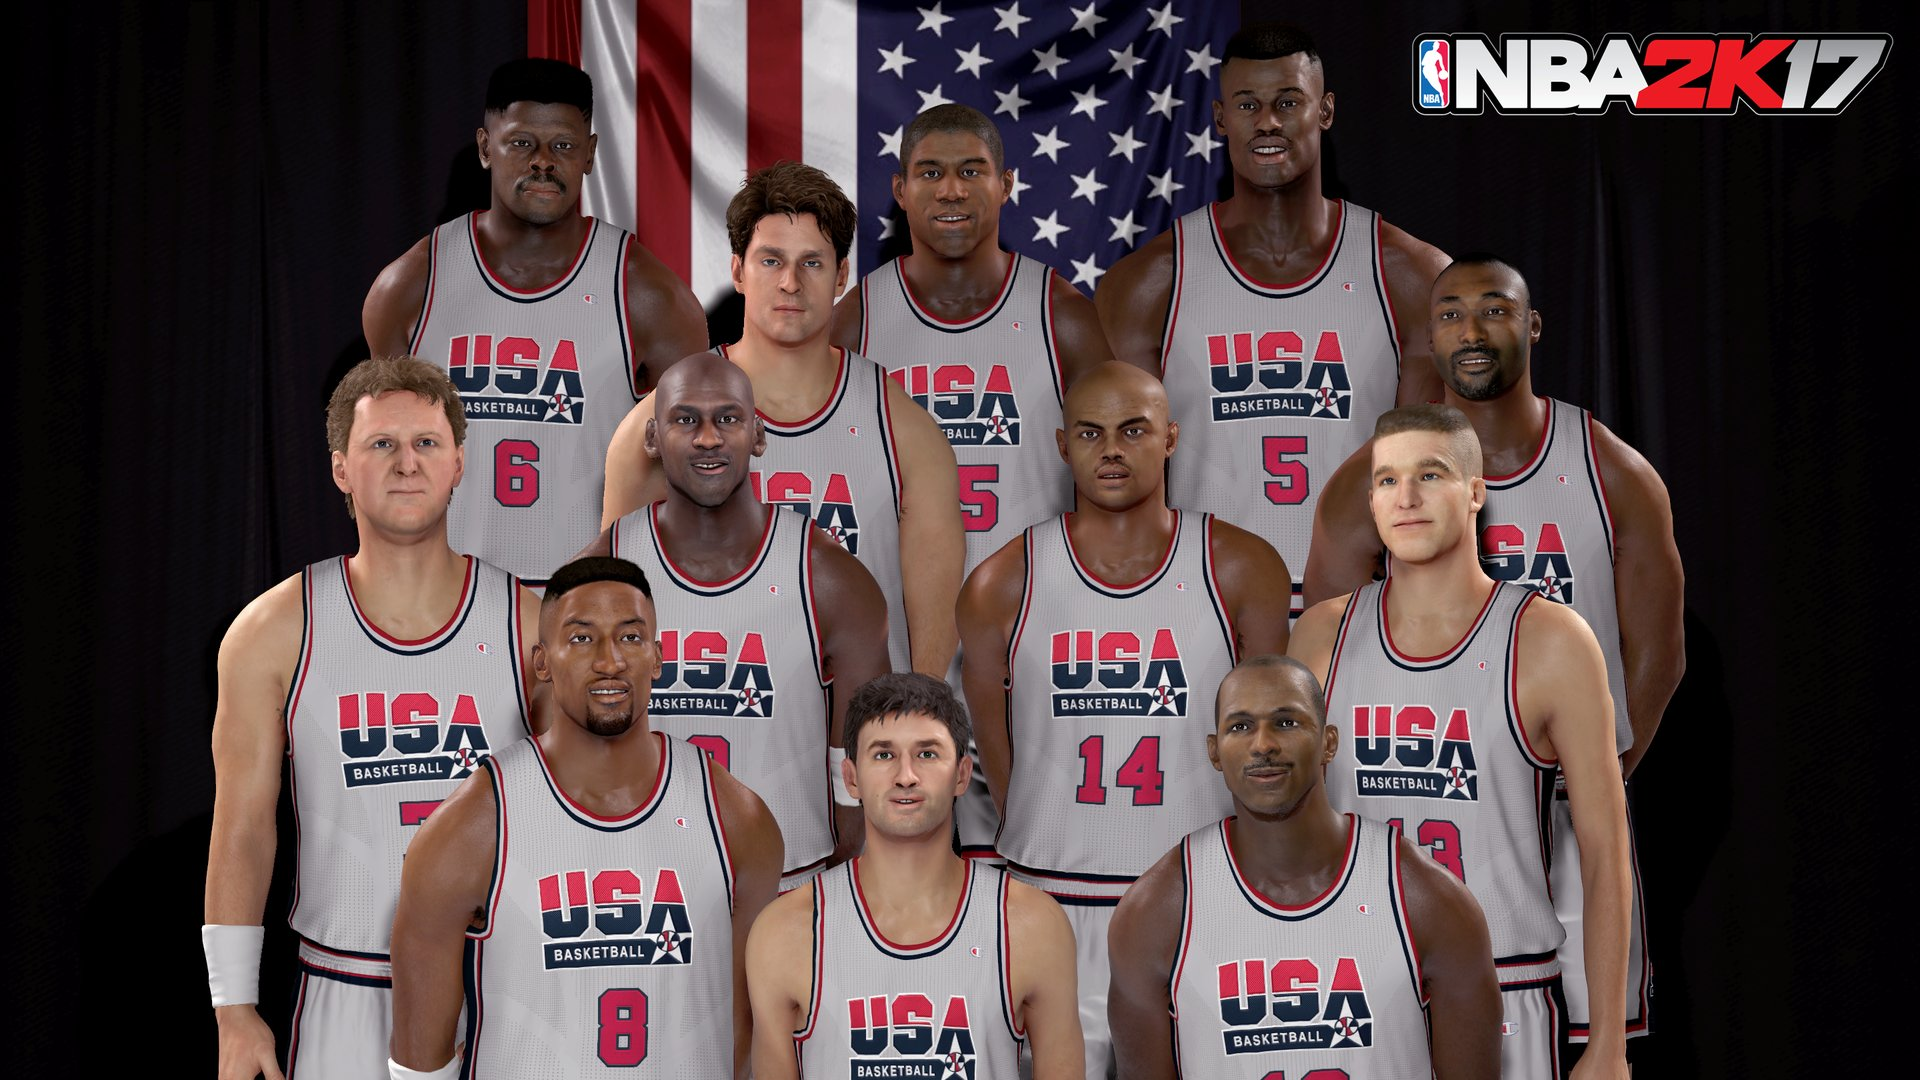 39 nba 2k17 39 recreates team photos for 1992 dream team 2016 men 39 s national team other sports. Black Bedroom Furniture Sets. Home Design Ideas